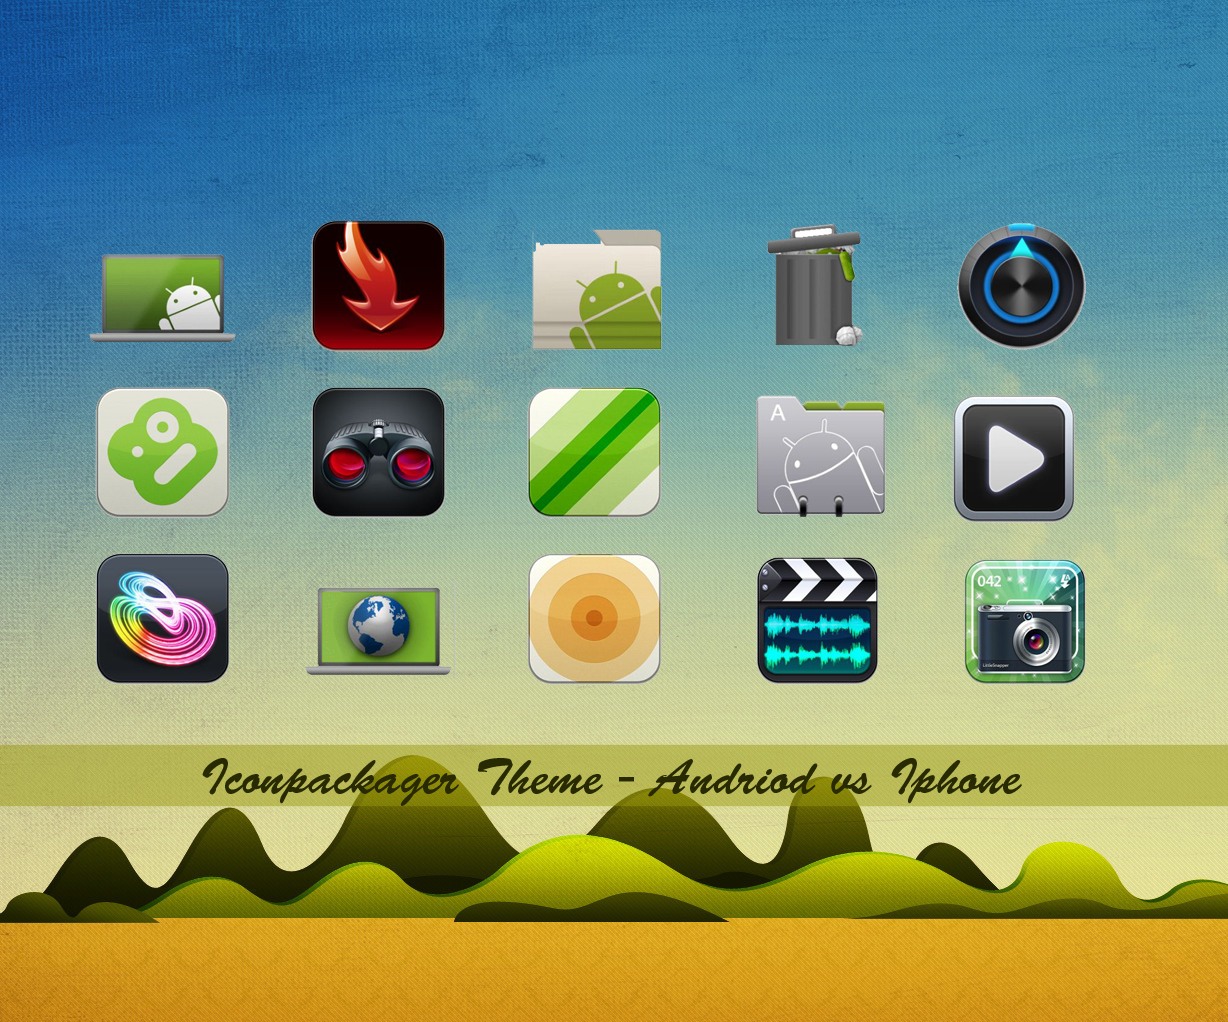 Andriod vs Iphone iconpackager